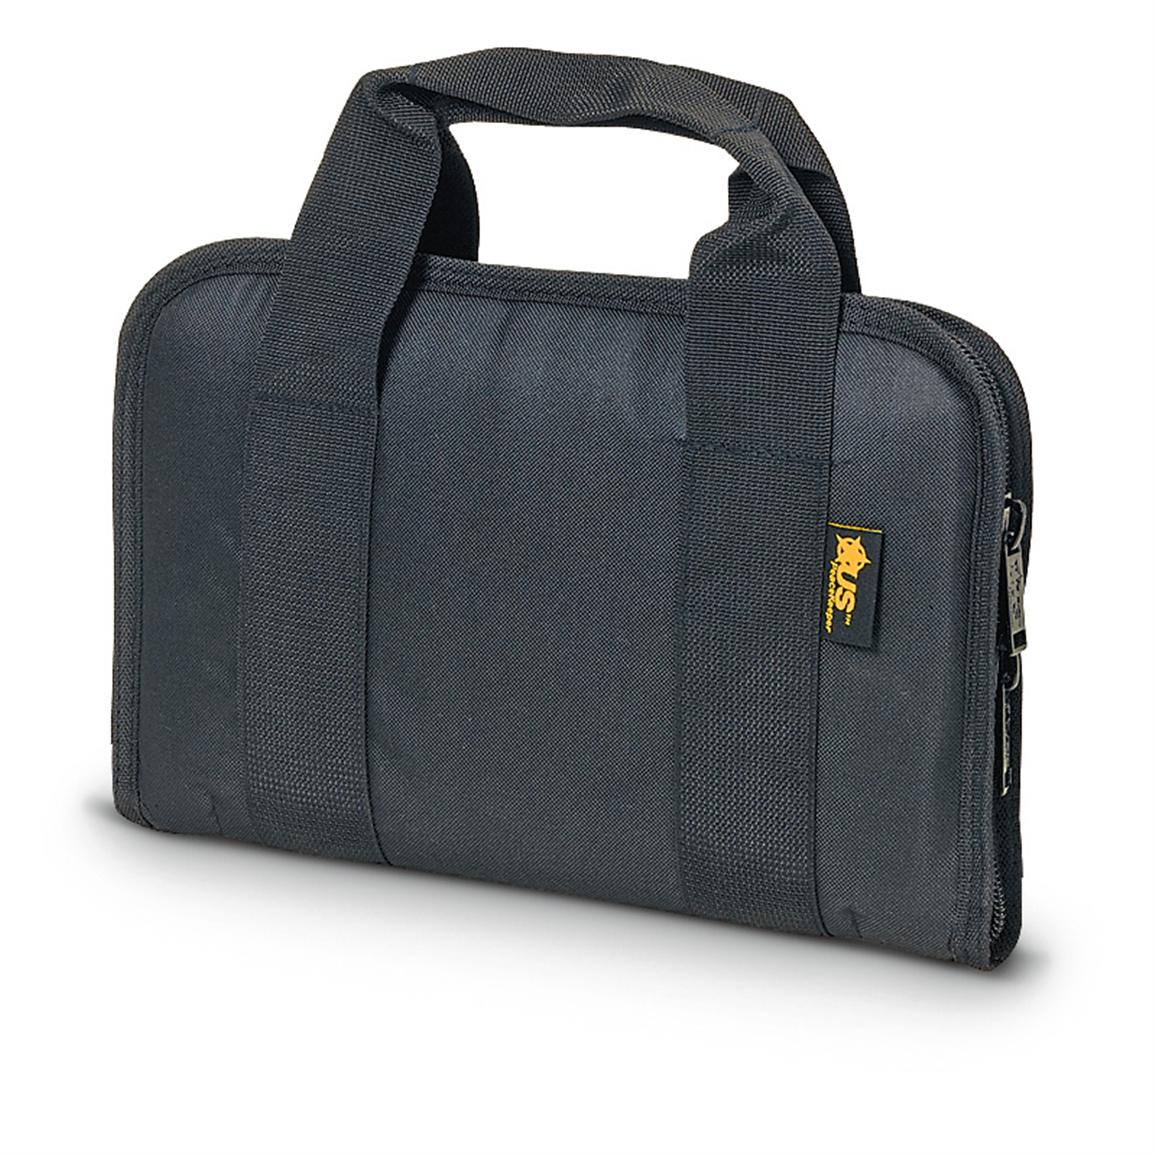 U.S. Peacekeeper® Attache Gun Case